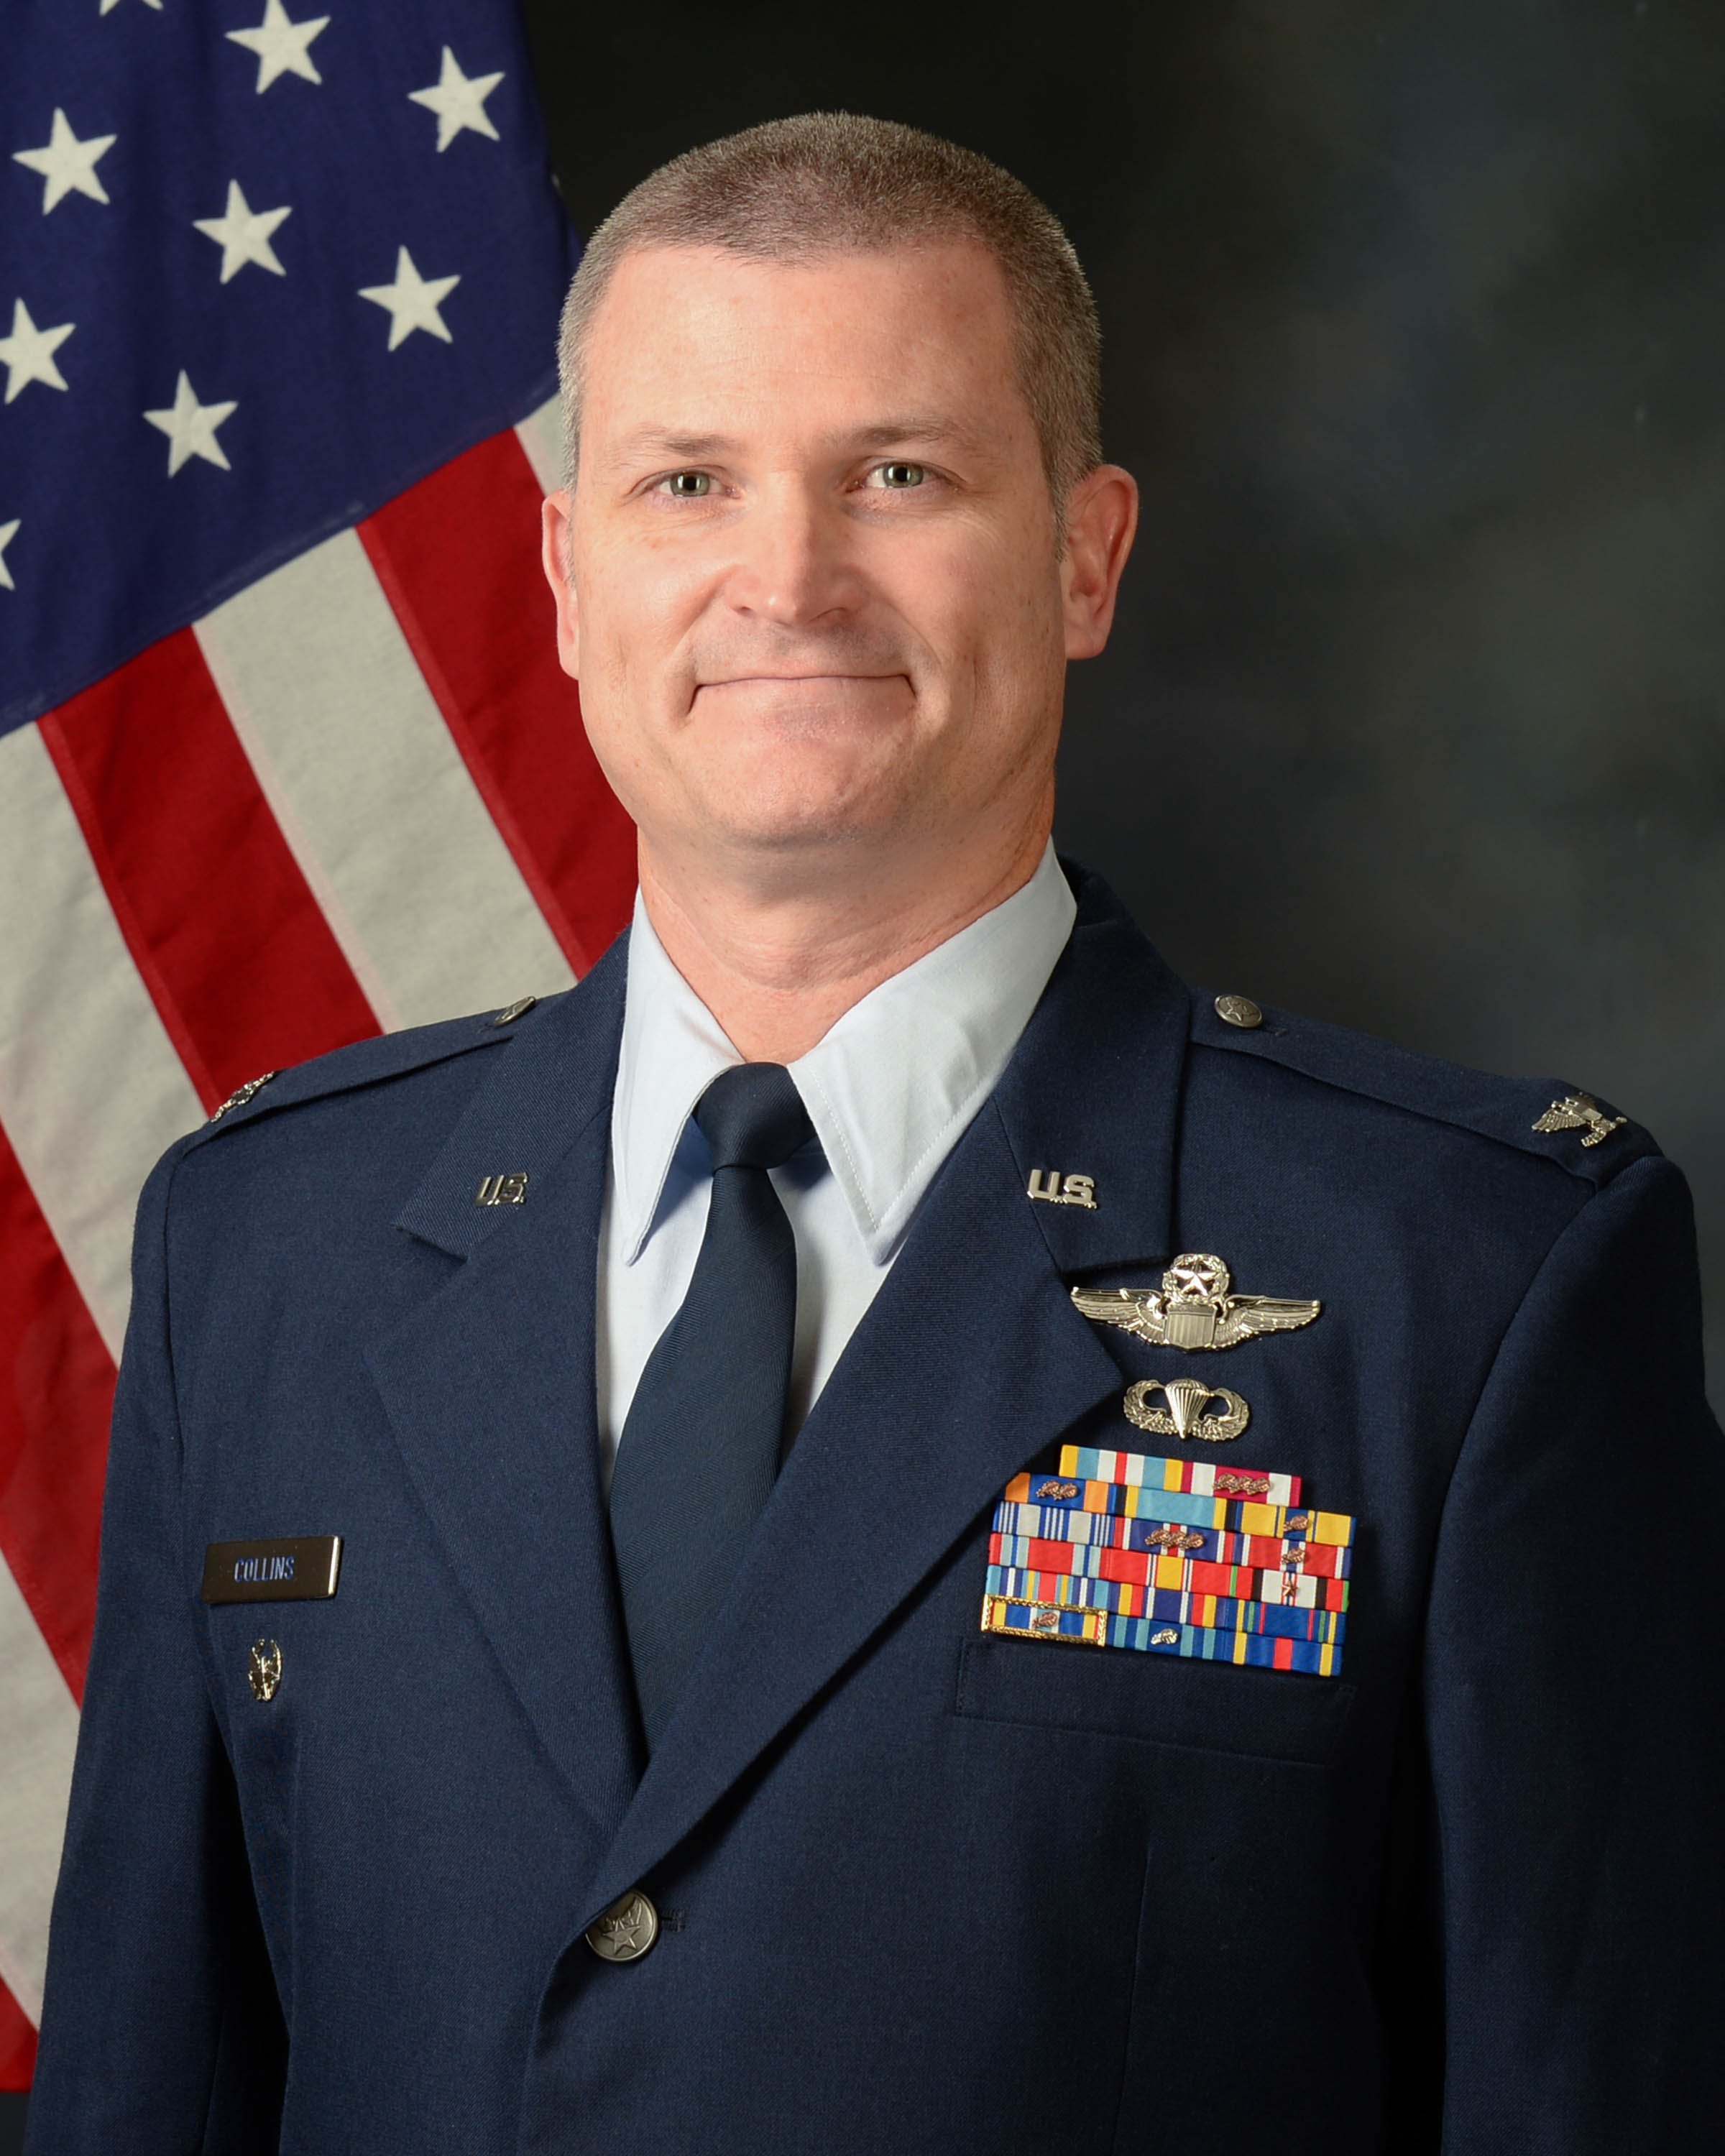 Colonel Brian Collins official photo with American flag background